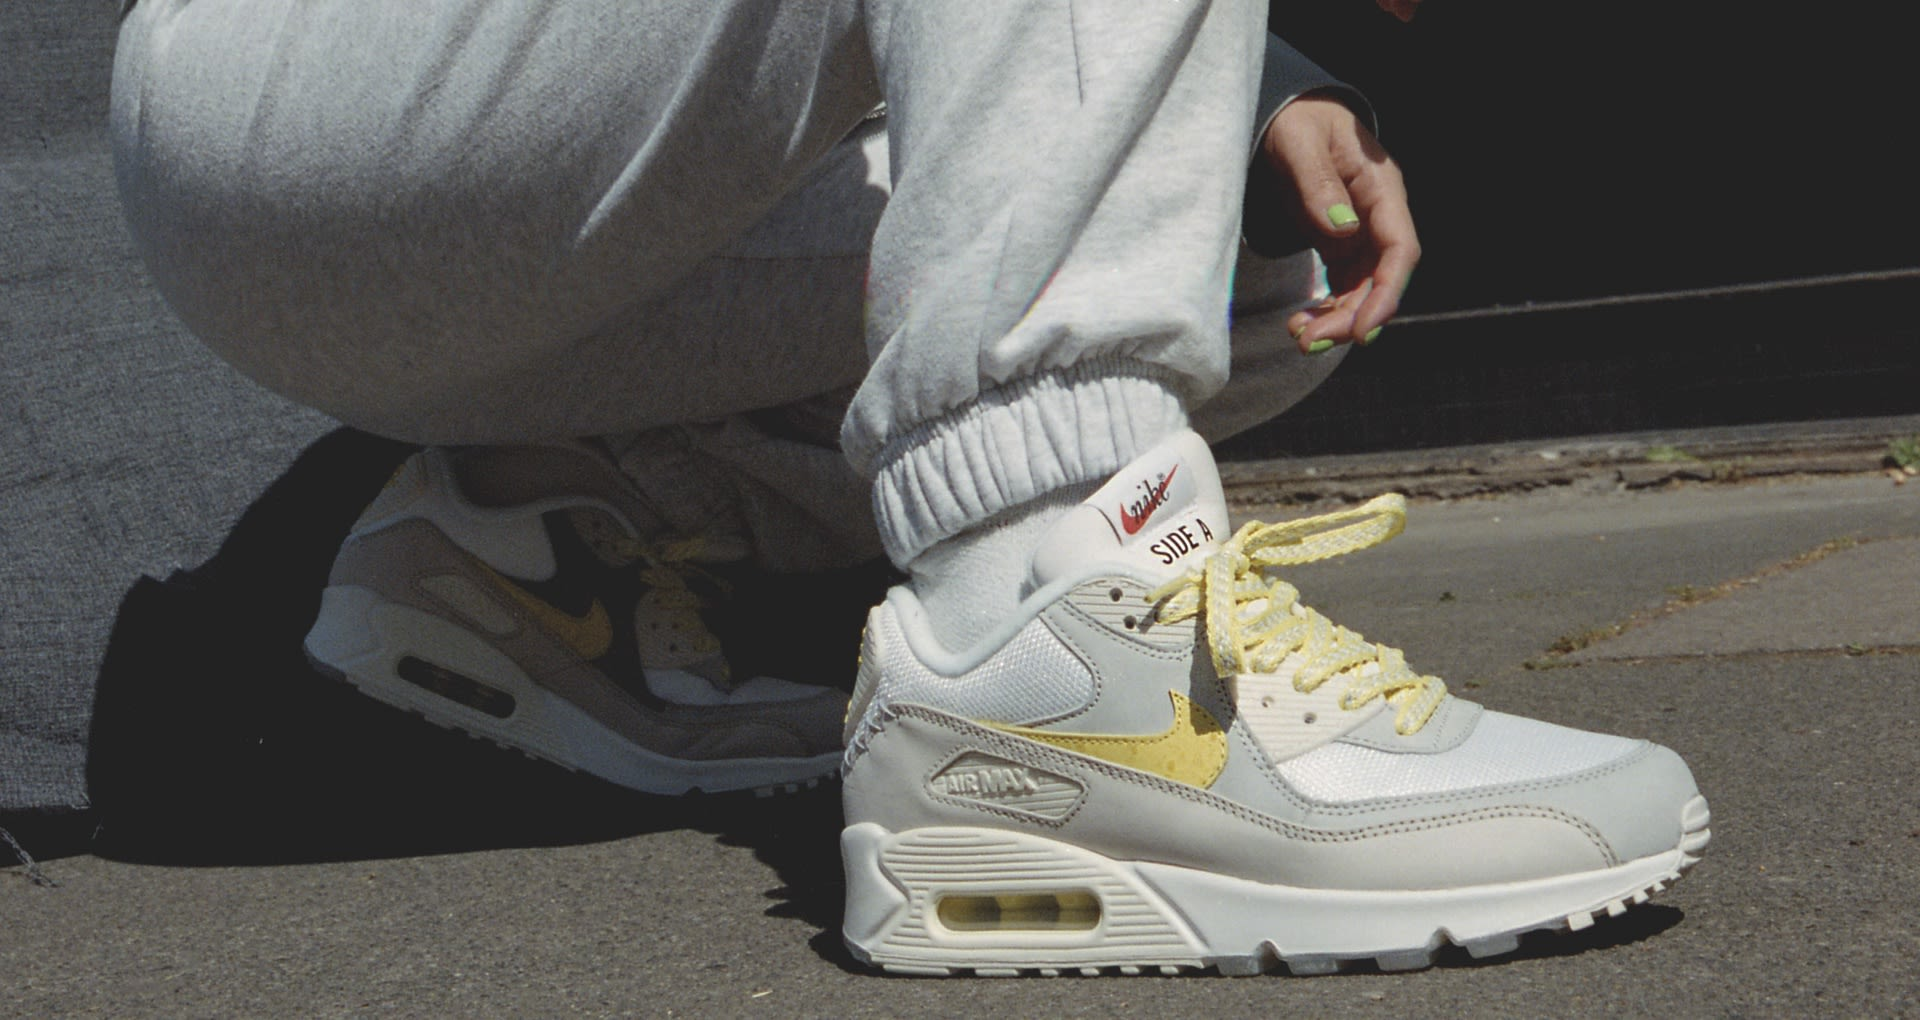 latest discount online retailer sale The Future Is Sampling: Air Max 90 'Side A'. Nike SNEAKRS GB